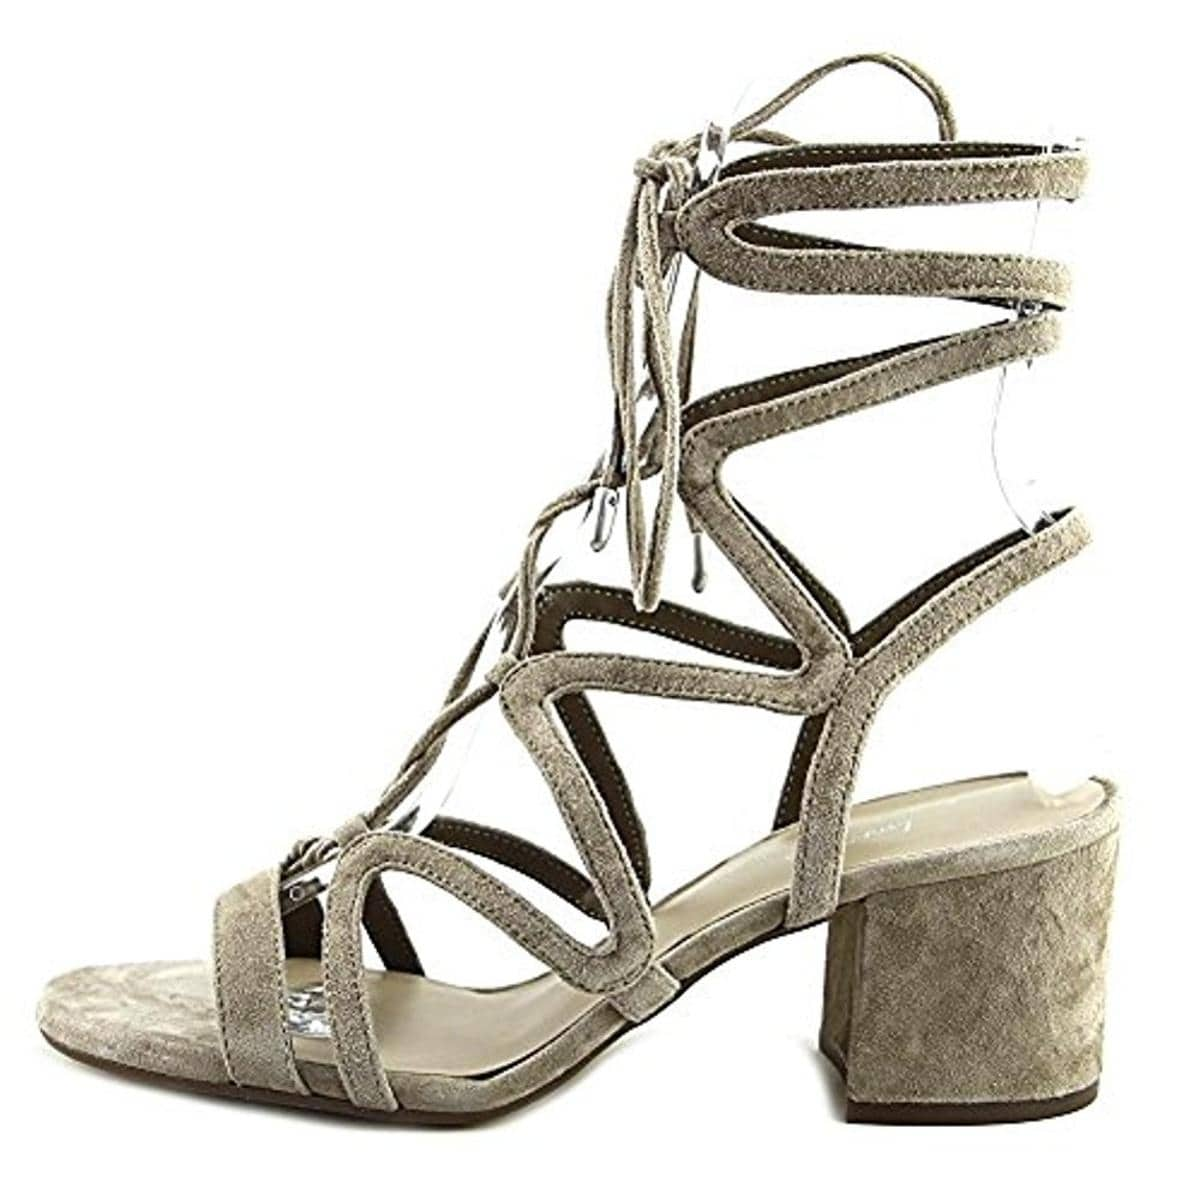 21c84bab3557 Shop 424 Fifth Womens Honey Dress Sandals Suede Caged - On Sale - Free  Shipping On Orders Over  45 - Overstock - 20982808